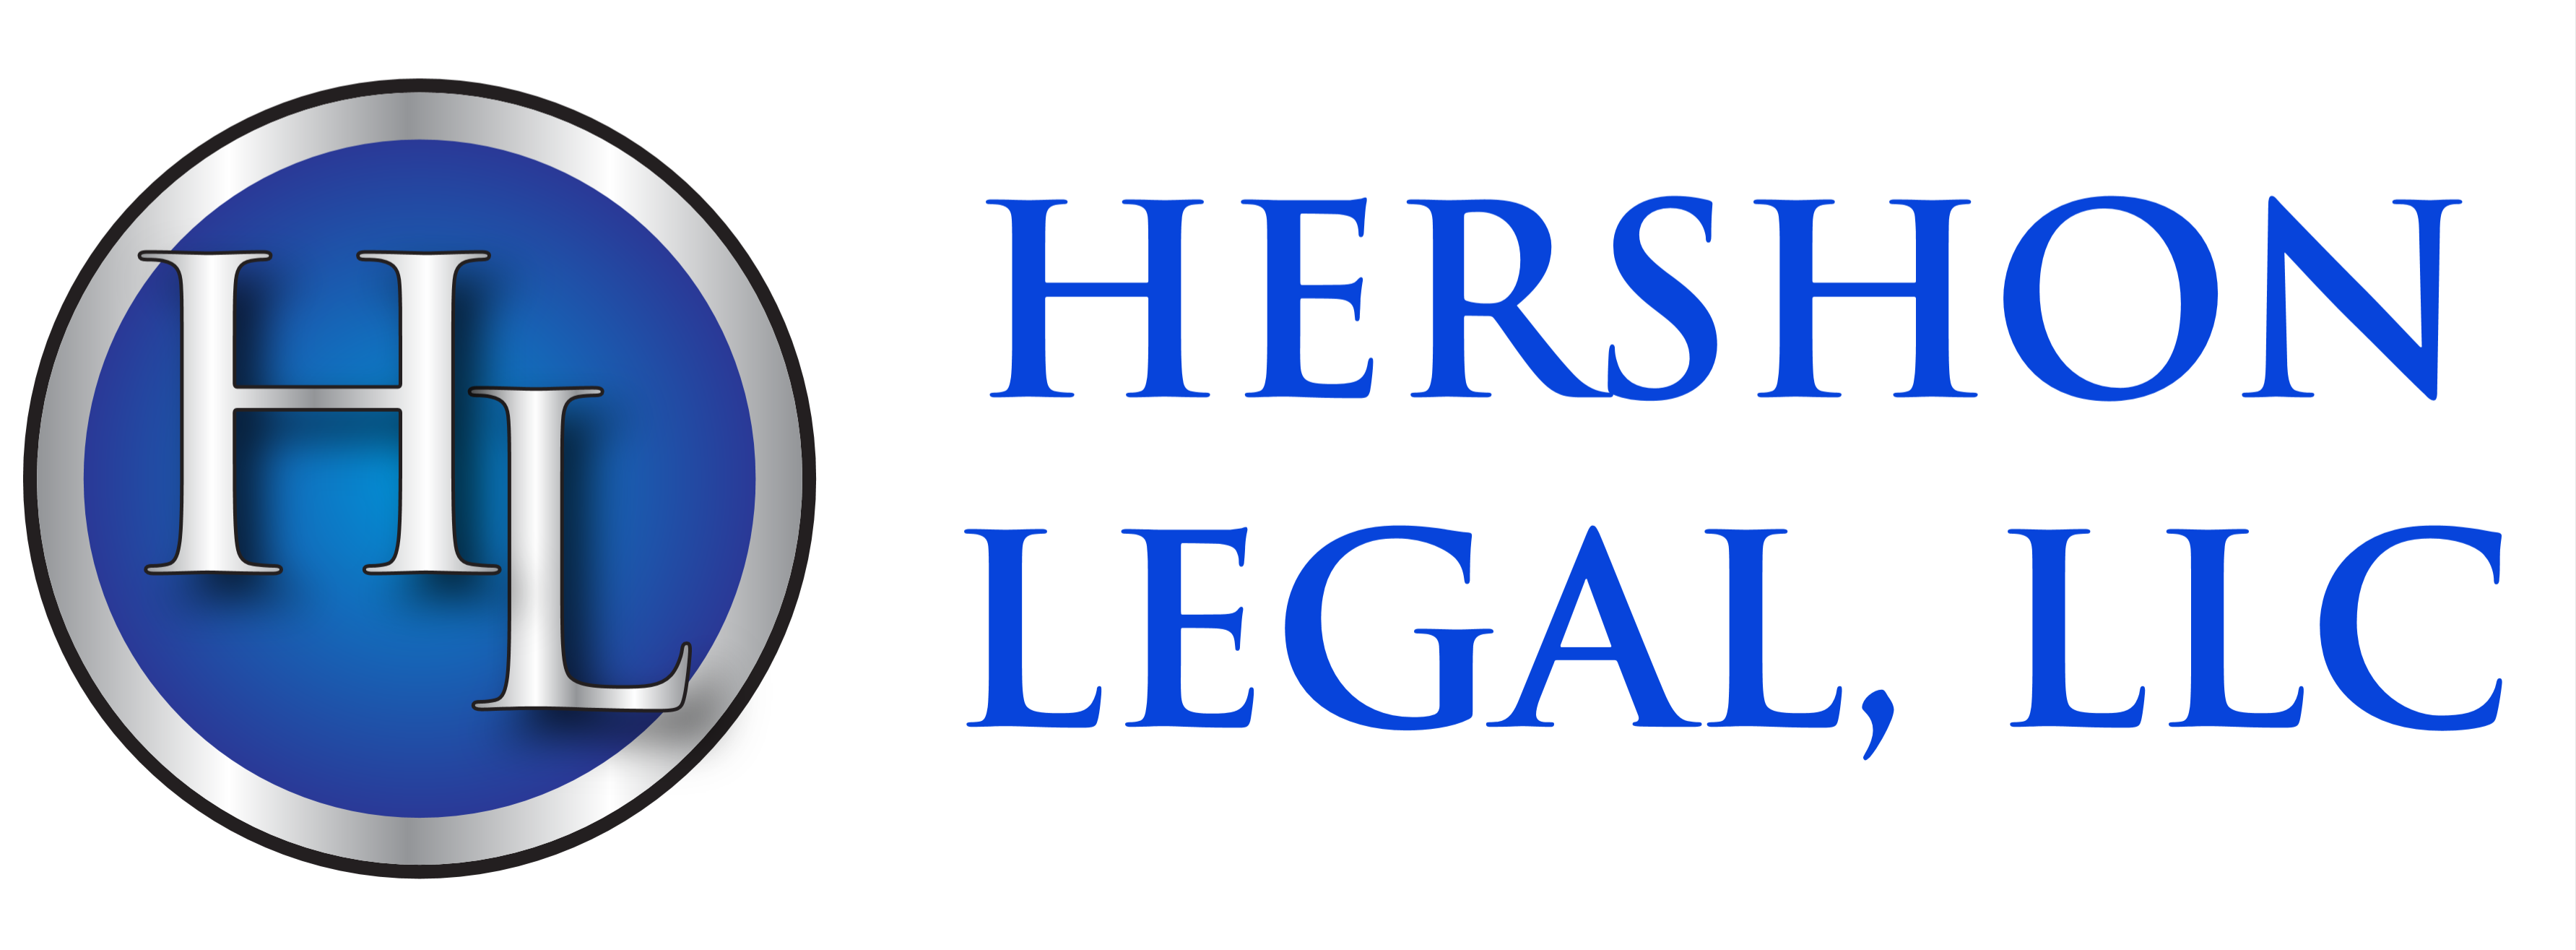 Hershon Legal, LLC logo